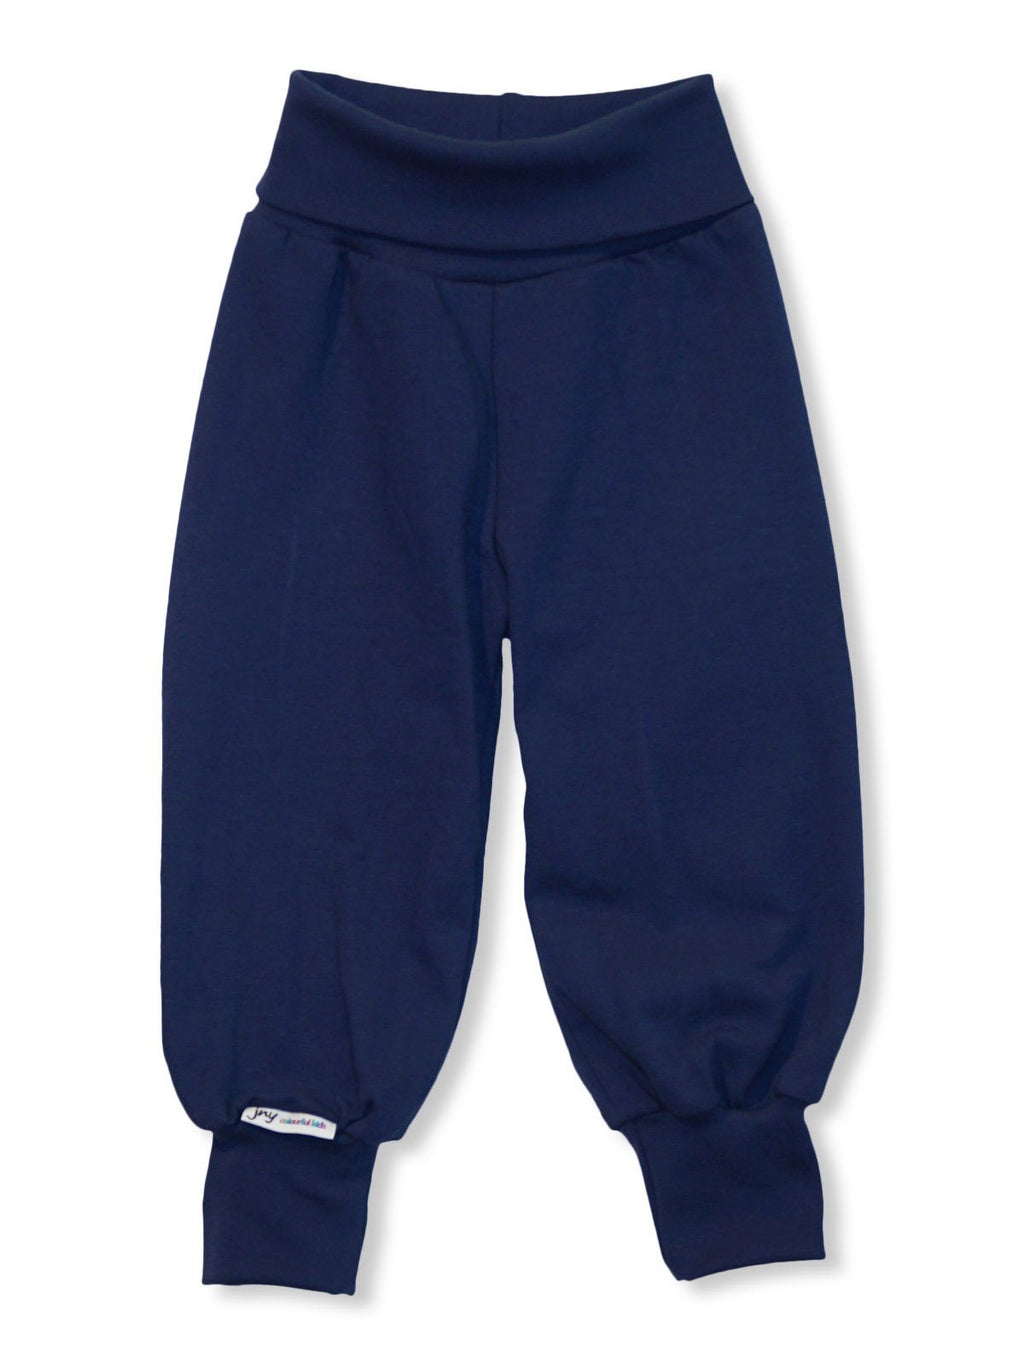 Pants marine blue